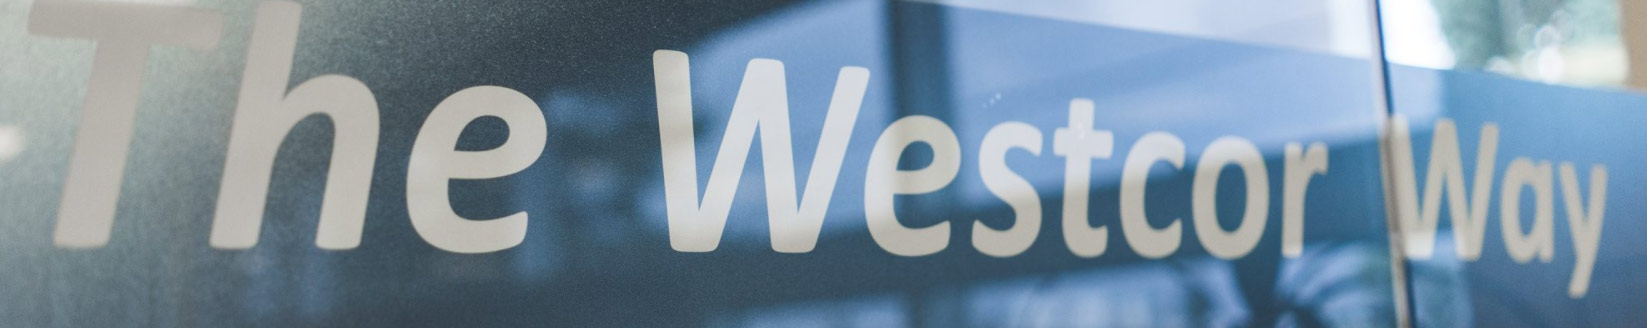 The Westcor Way - Our values